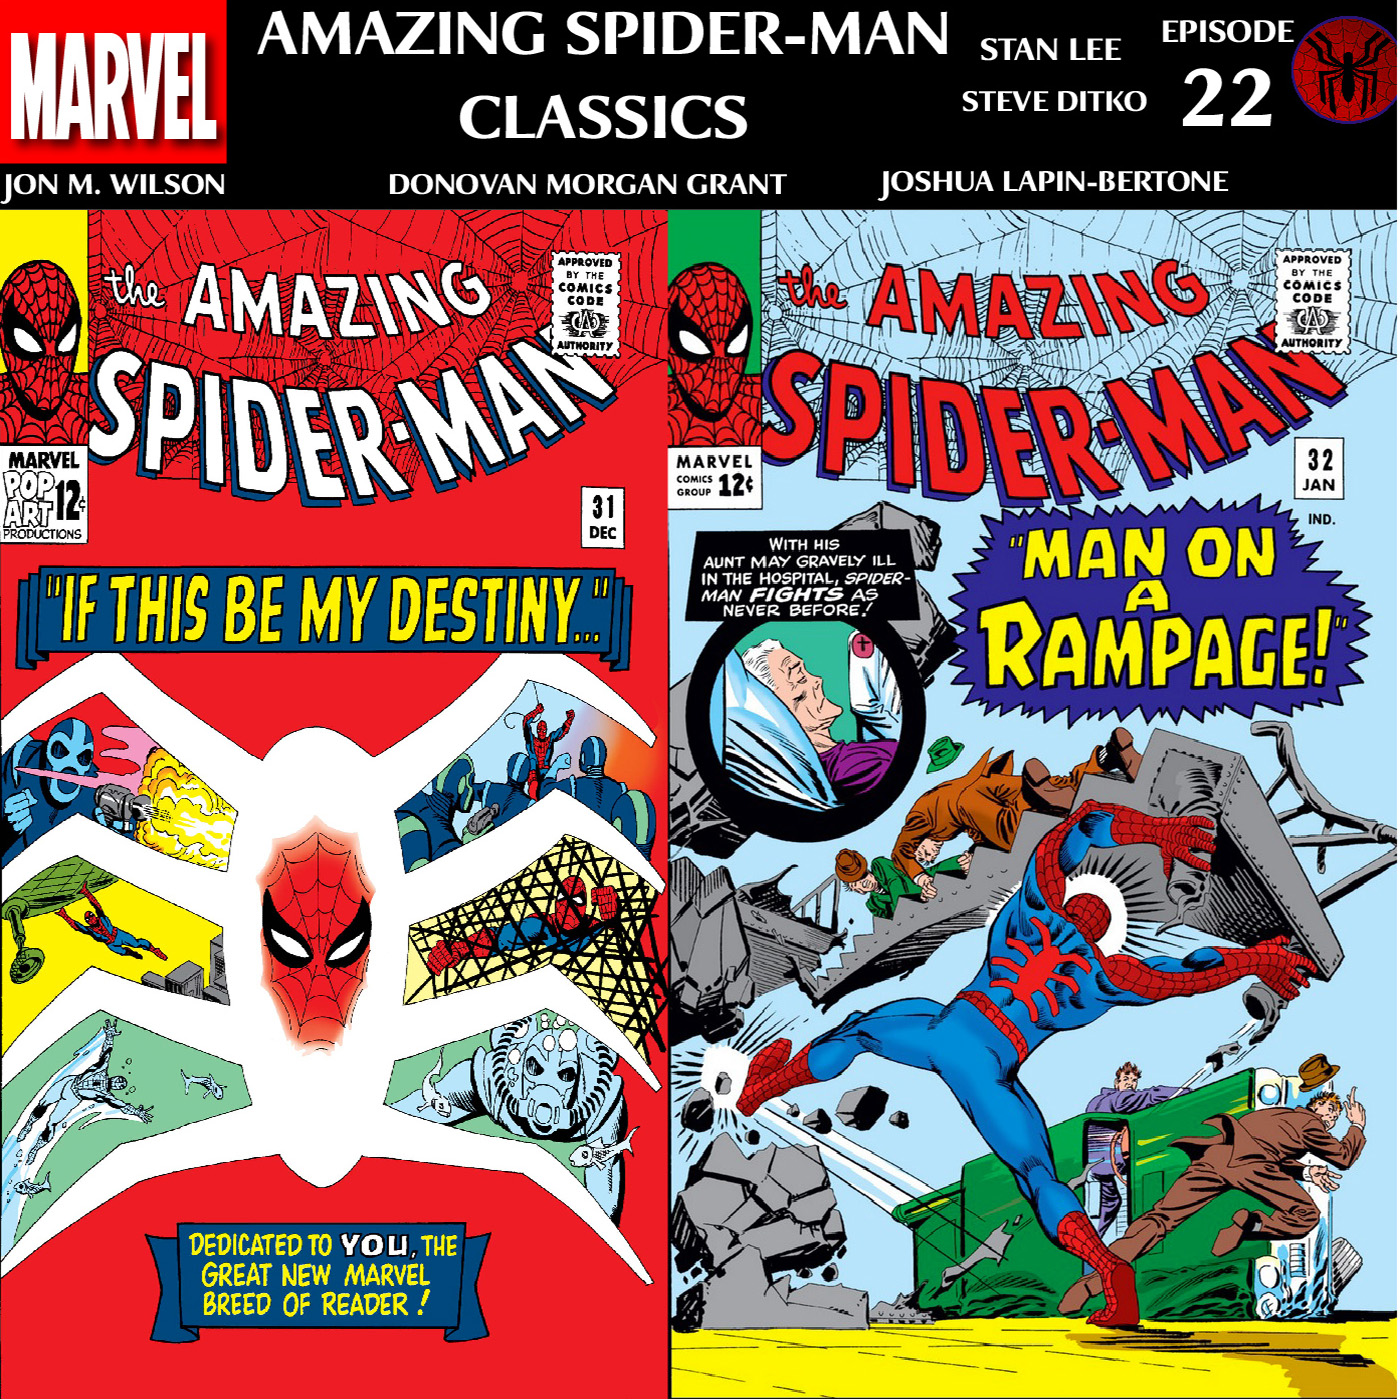 ASM Classics Episode 22: Amazing Spider-Man 31 and 32